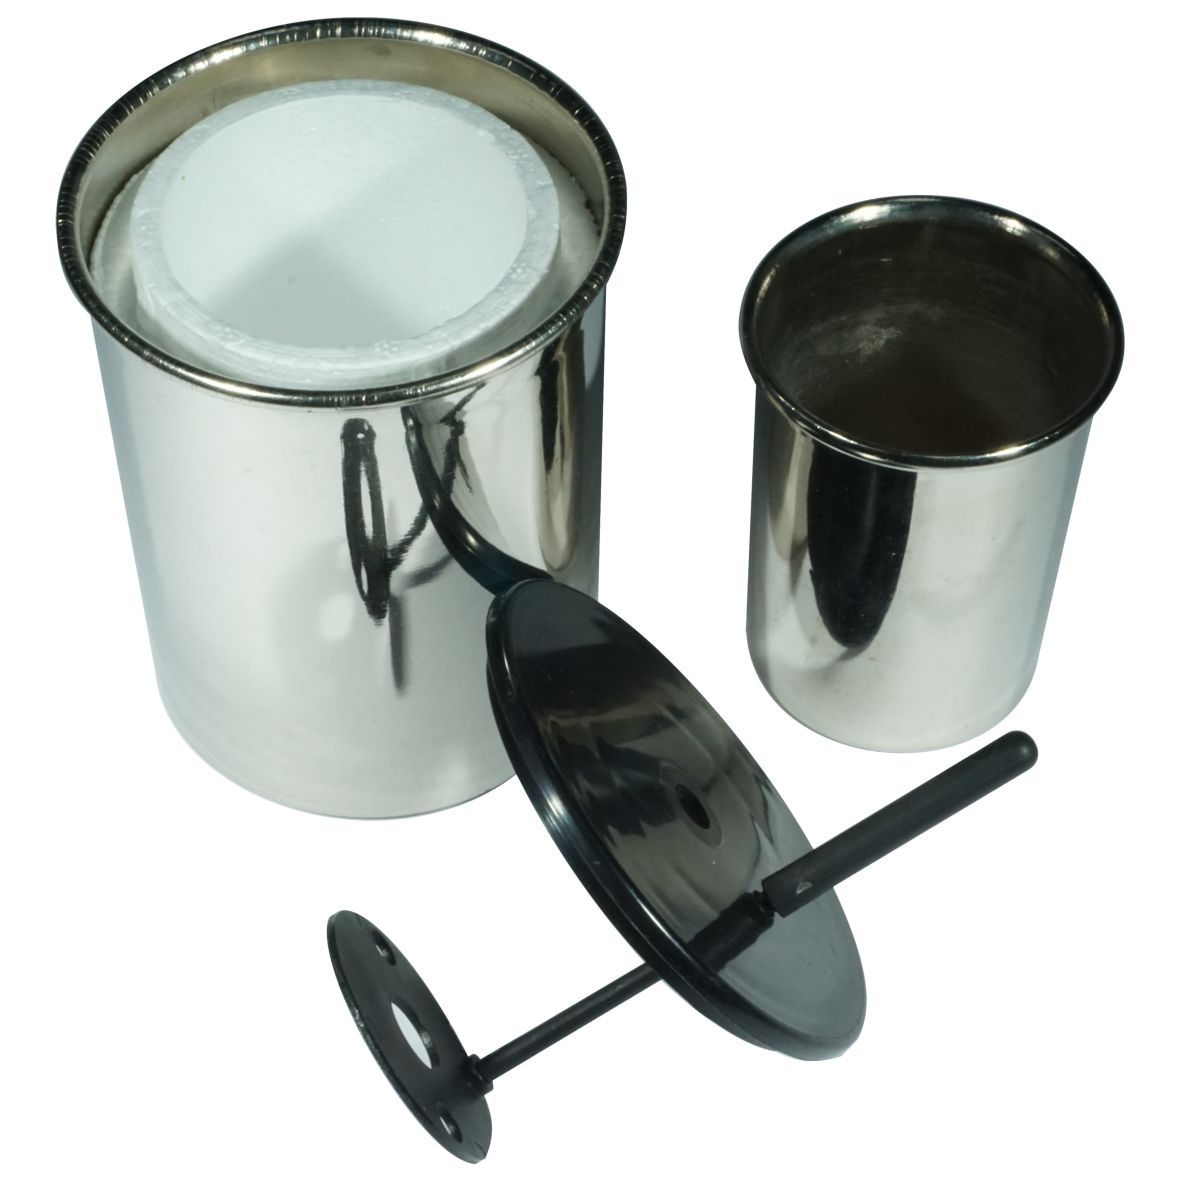 CALORIMETER CUP PAIR INNER/OUTER WITH LID & STIRRER